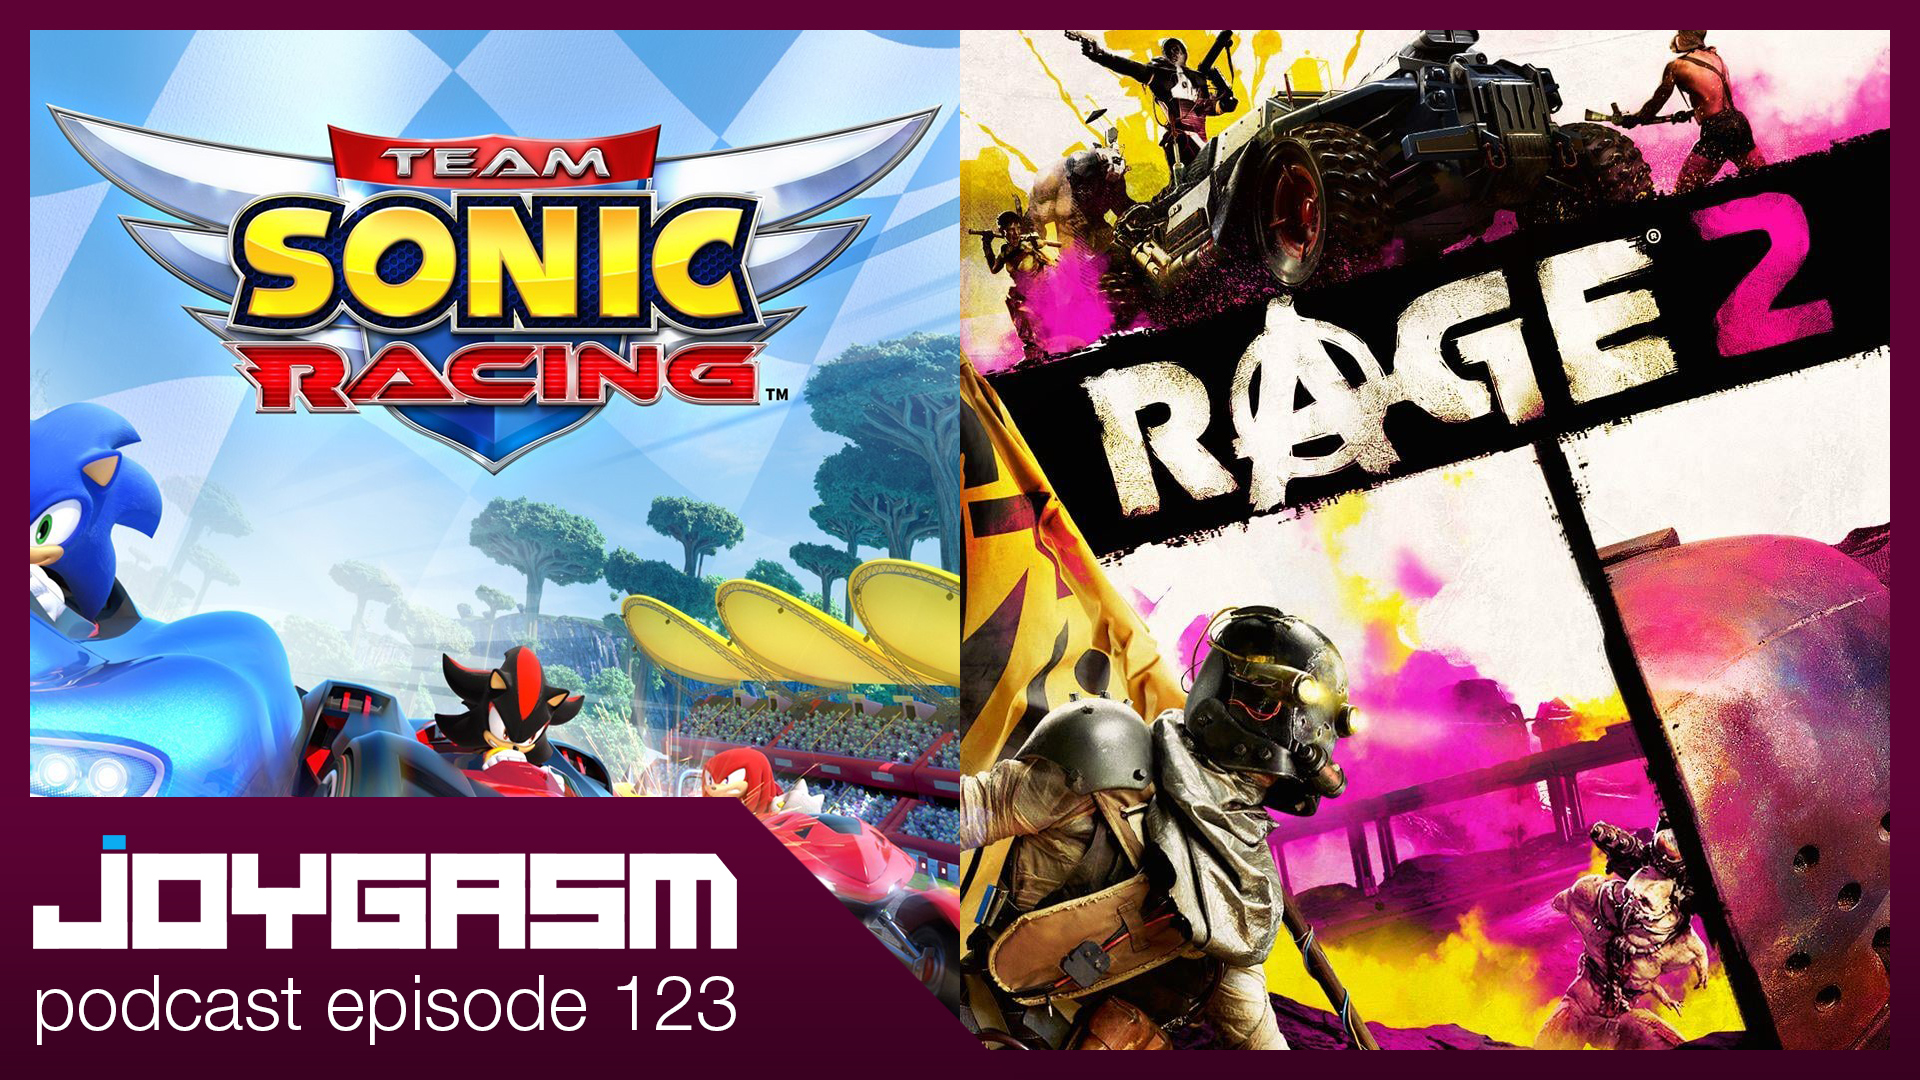 Ep. 123: Rage 2, Team Sonic Racing, & More